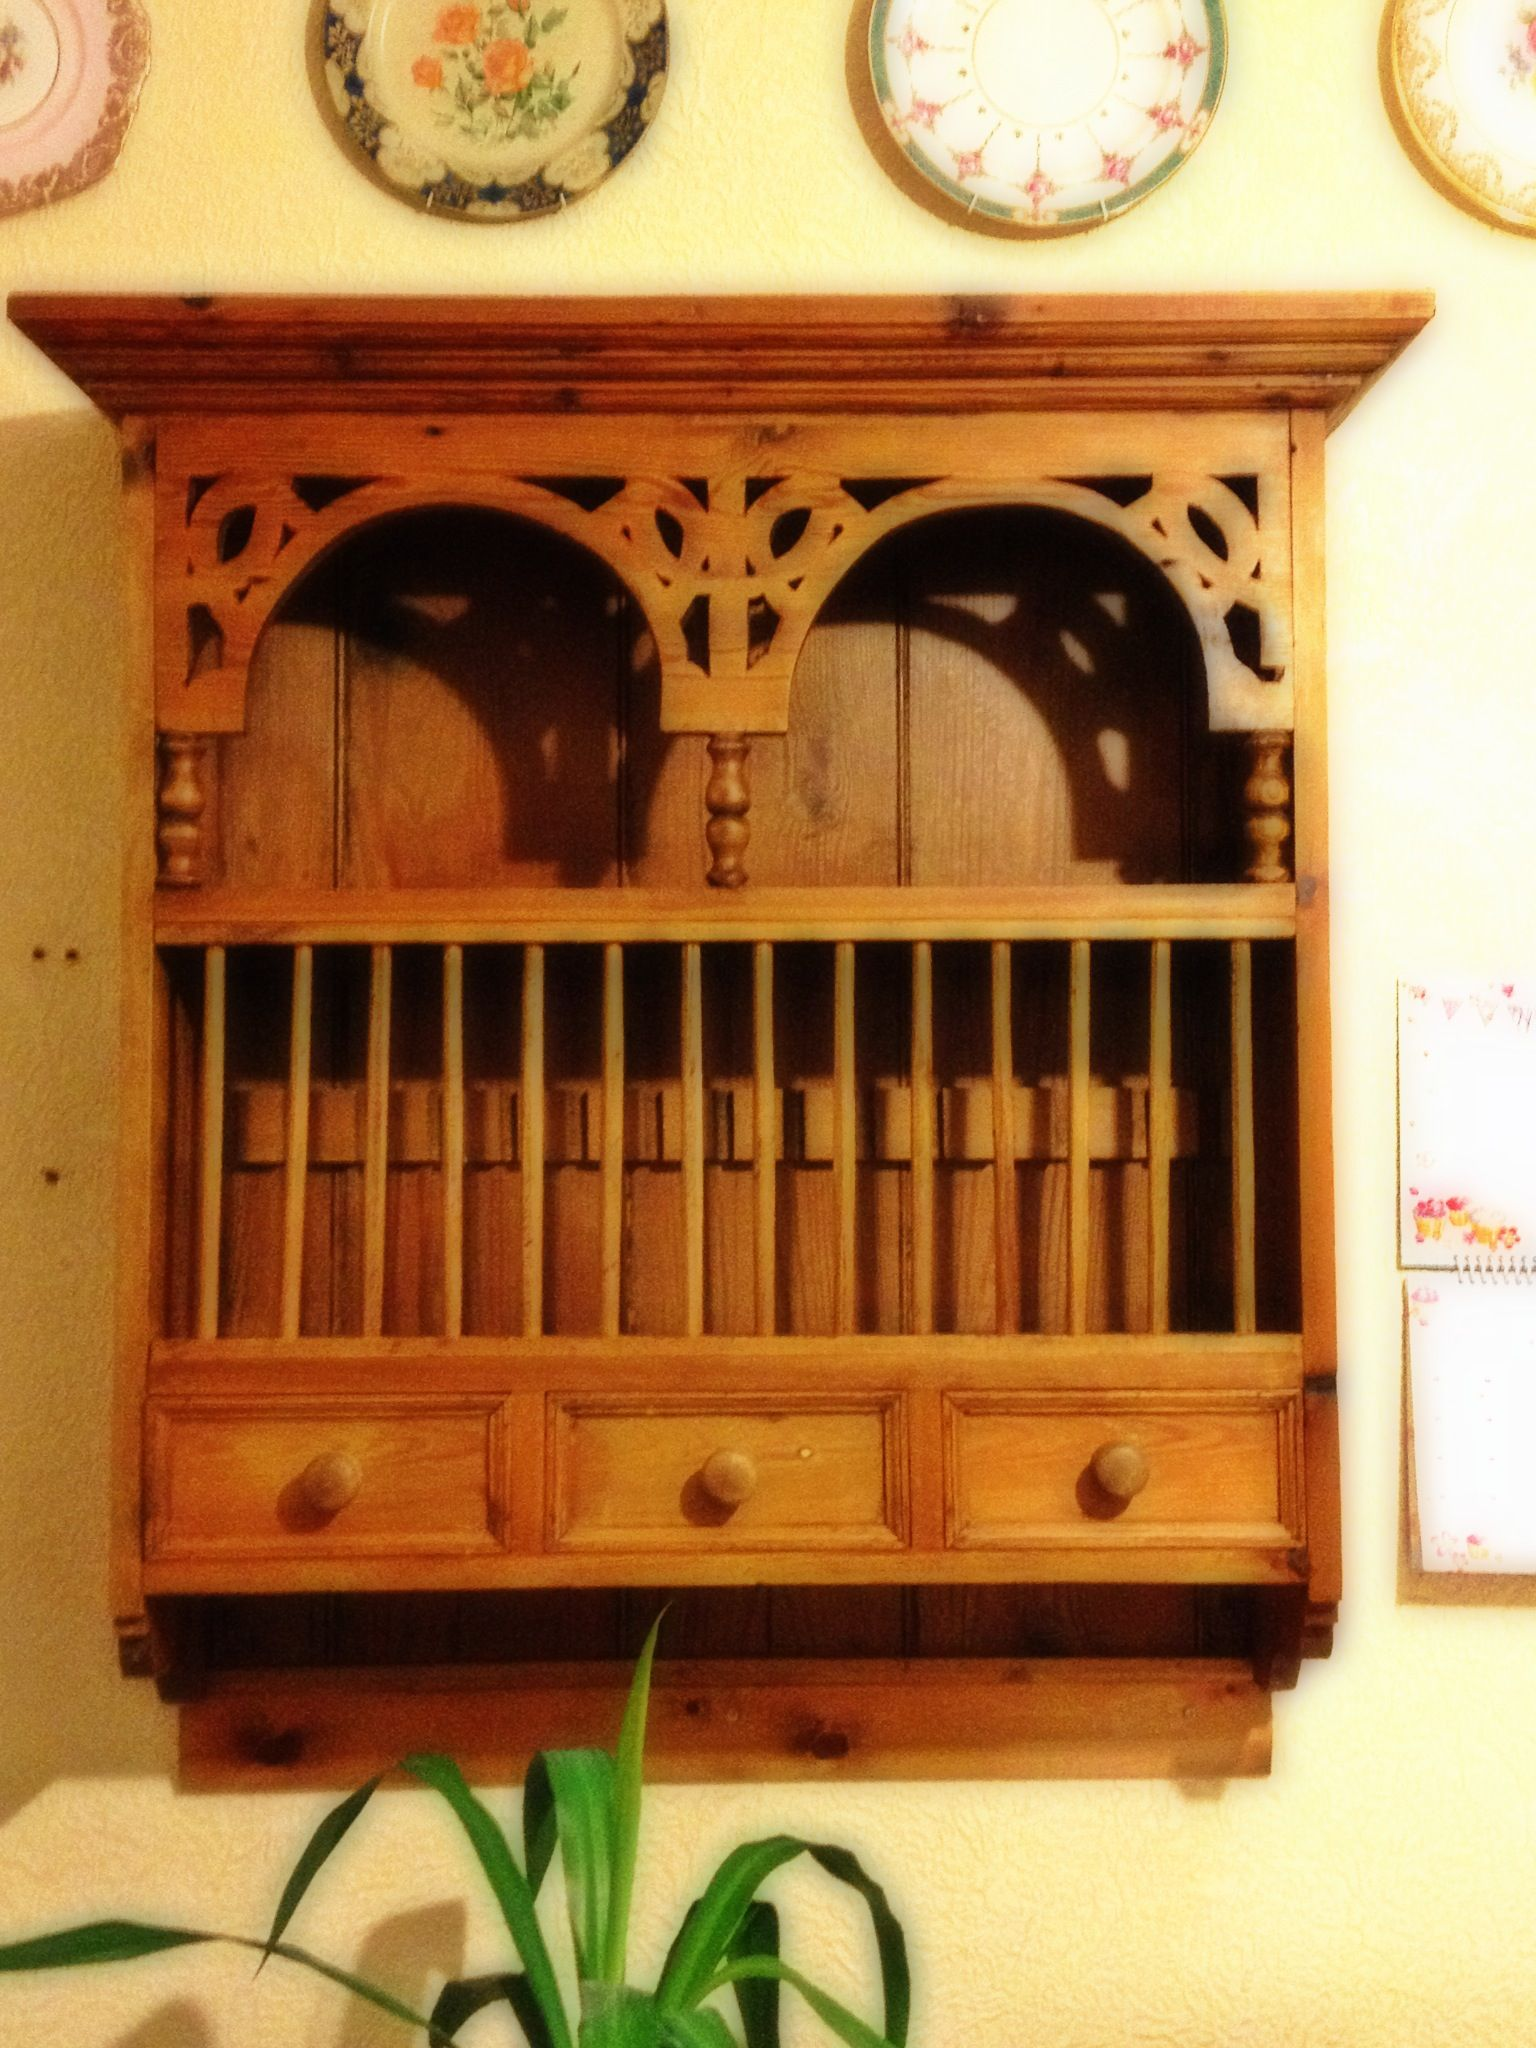 wooden kitchen plate rack cabinet appliences vintage wall mounted home decor pinterest